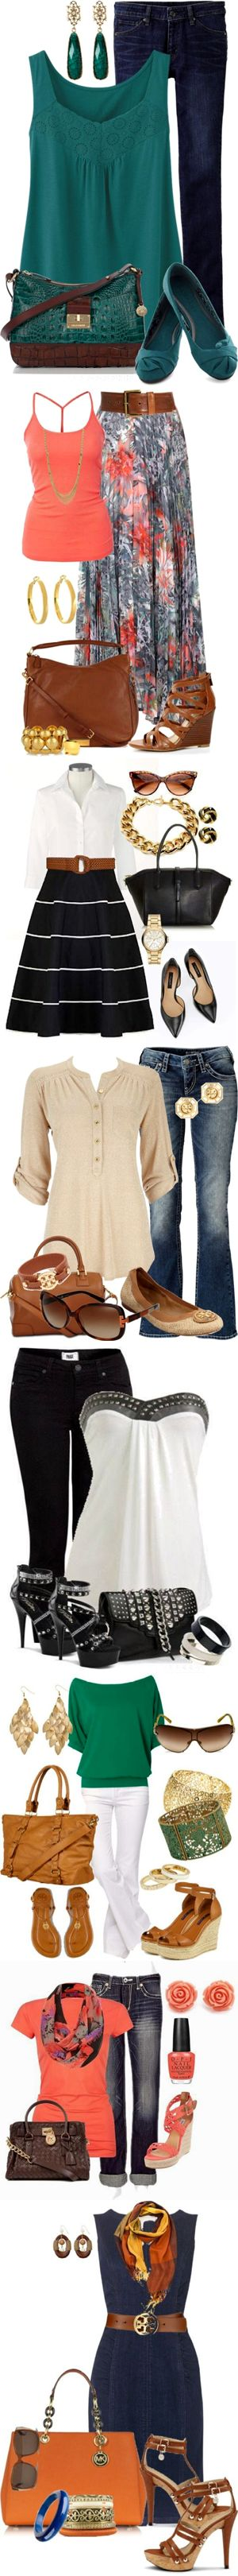 Lovely Outfit Ideas Outfits, Fashion, Lovely